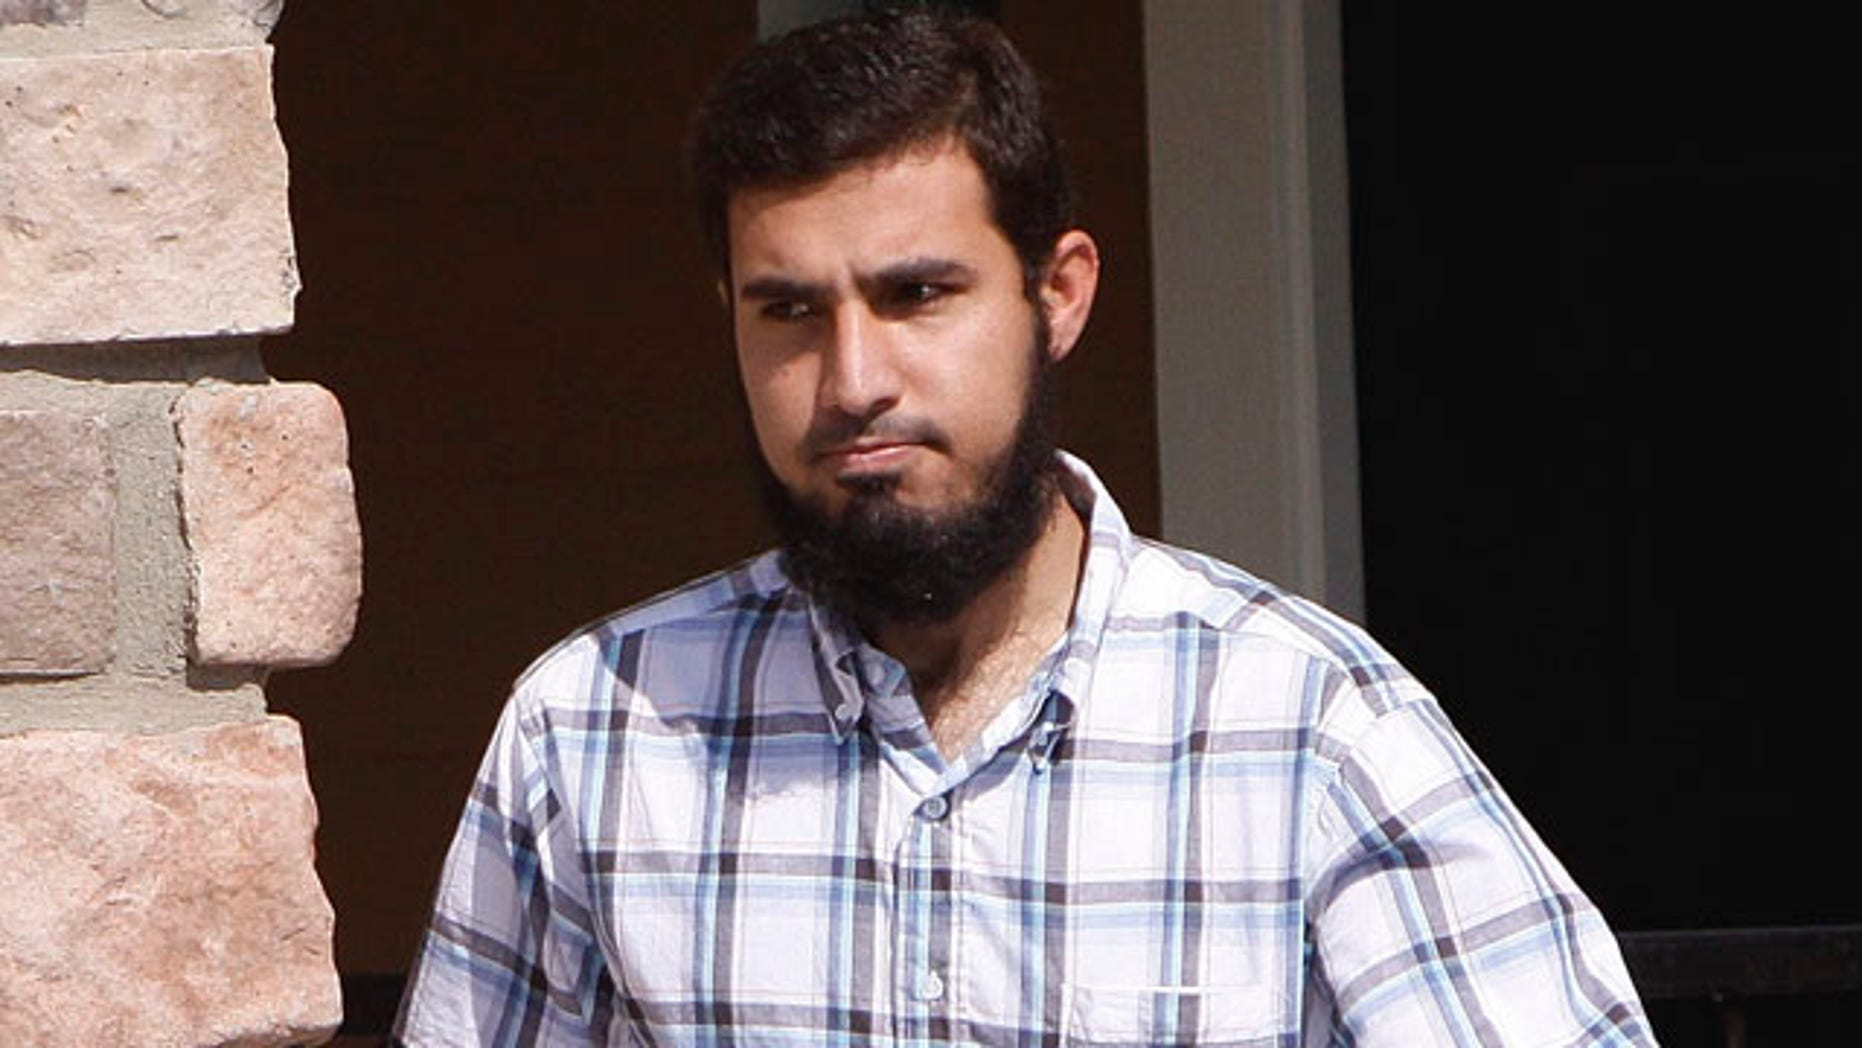 Sept. 17, 2009: Najibullah Zazi leaves his apartment in Aurora, Colo., for a meeting with his attorney. When New York undercover officers and informants were infiltrating a mosque in Queens in 2006, they failed to notice the increasingly radical sentiments of a young man who prayed there. Police also kept tabs on a Muslim student group at Queens College, but missed a members growing anti-Americanism. Those two men and friends -- Zazi at the mosque and Adis Medunjanin at the school -- would go on to be accused of plotting a subway bombing that officials have called the most serious terrorist threat to the United States since Sept. 11, 2001.